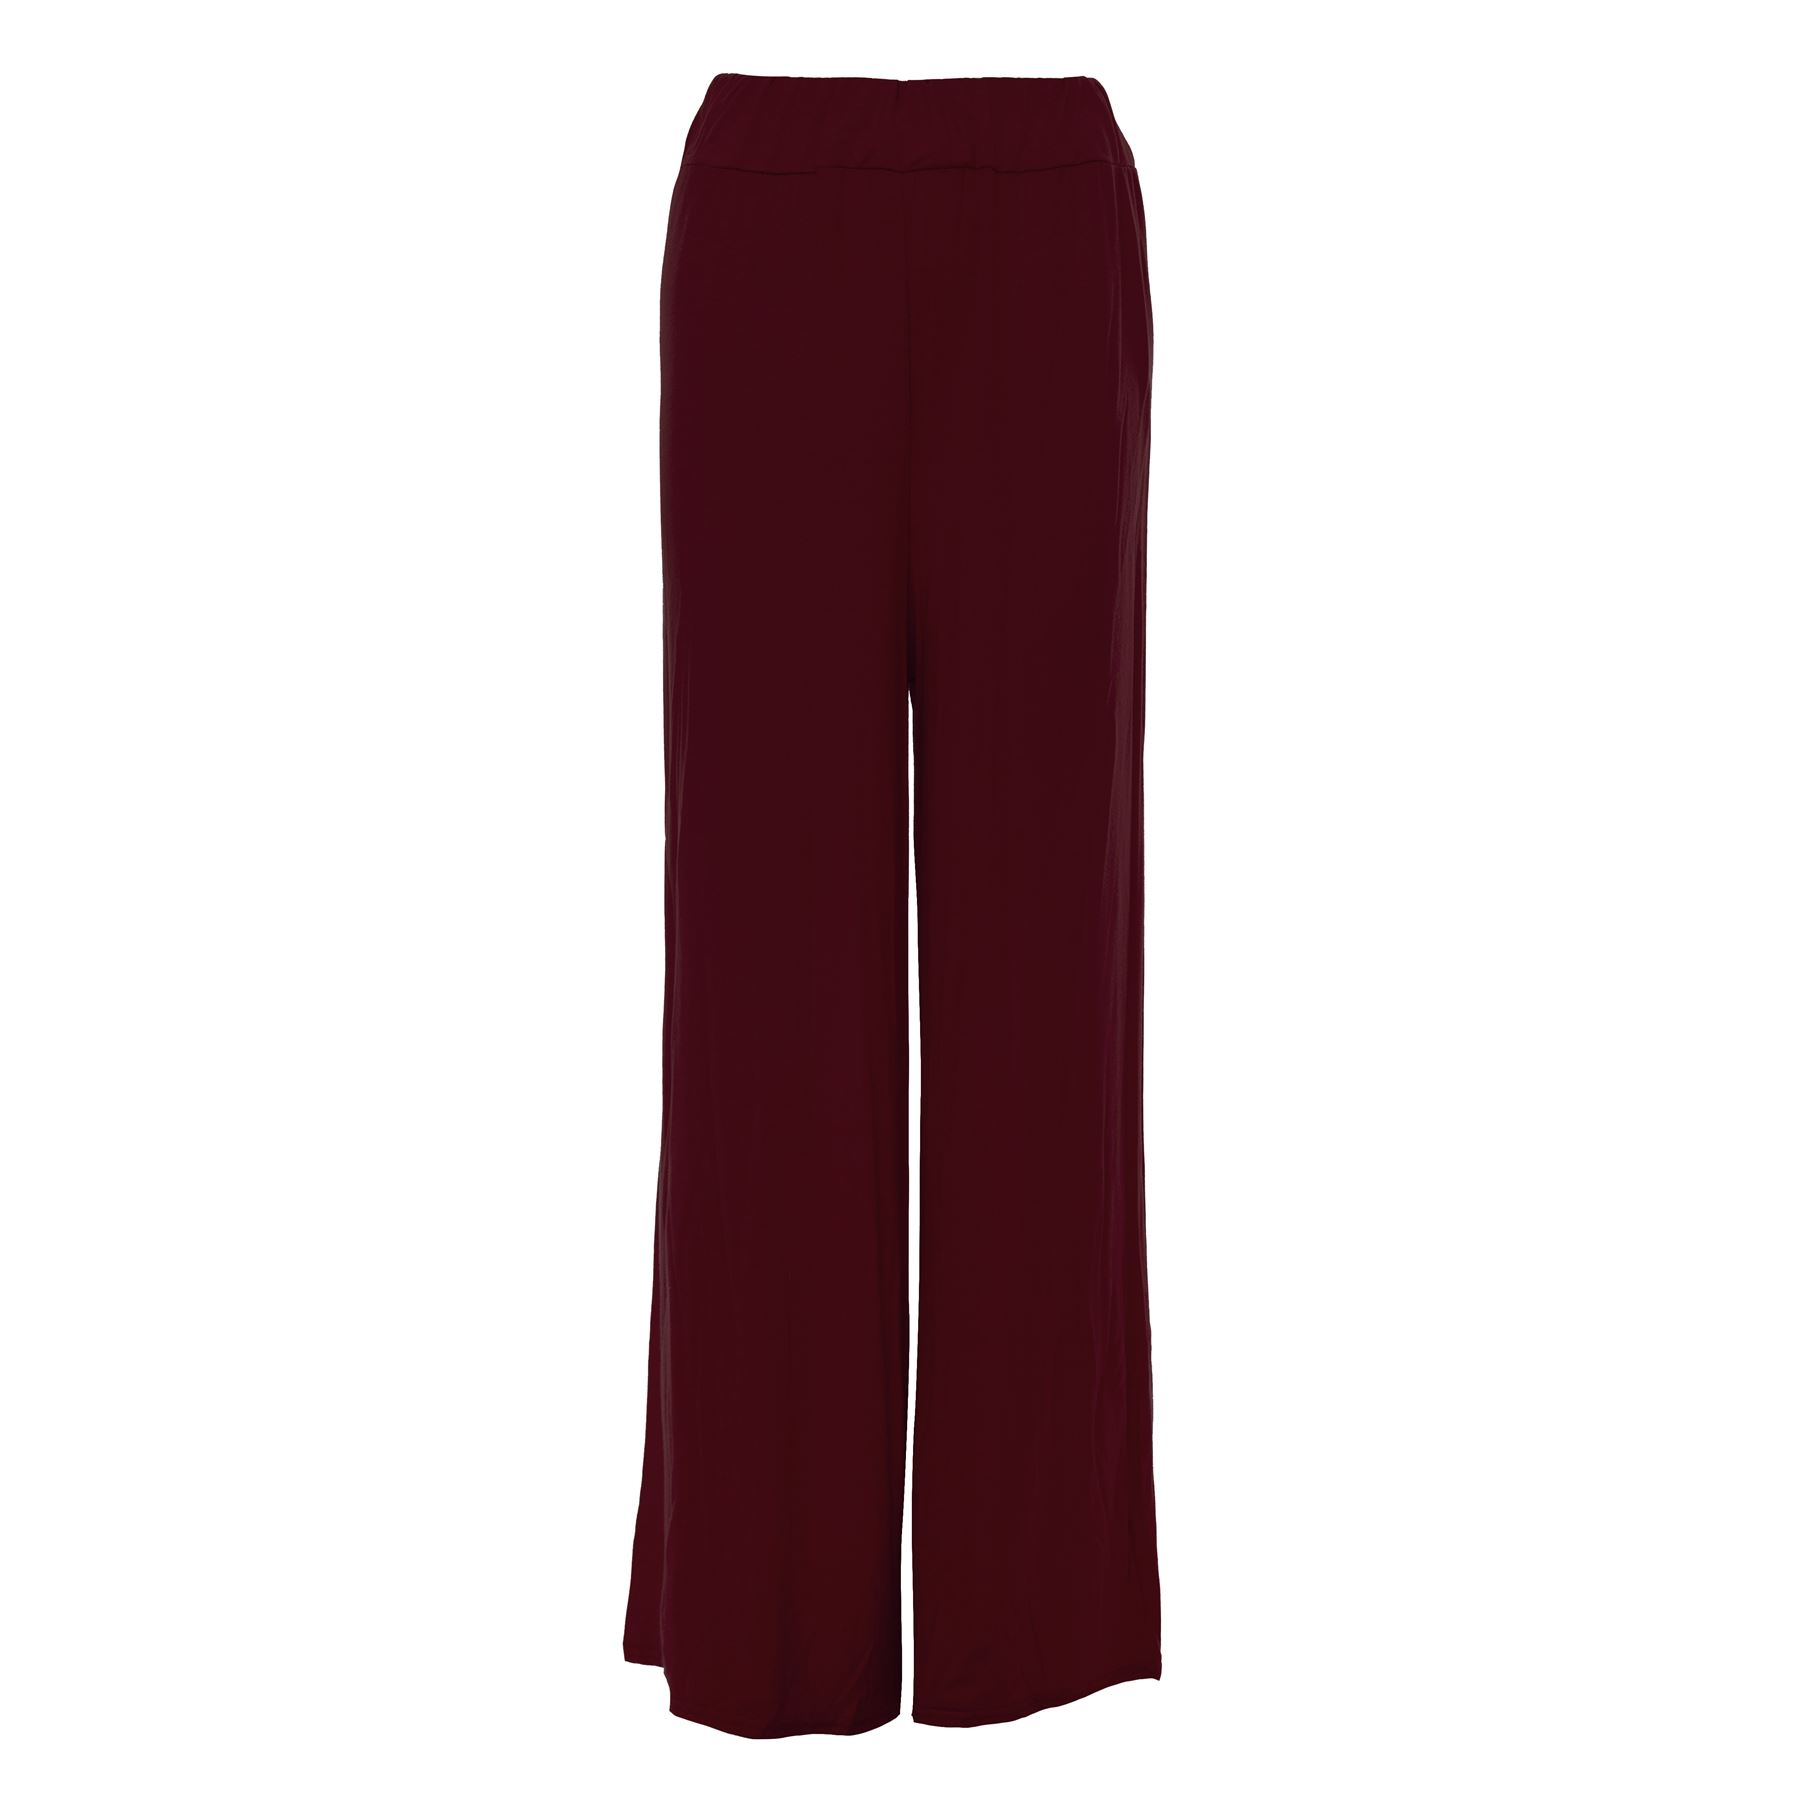 Shop for and buy womens palazzo pants online at Macy's. Find womens palazzo pants at Macy's.